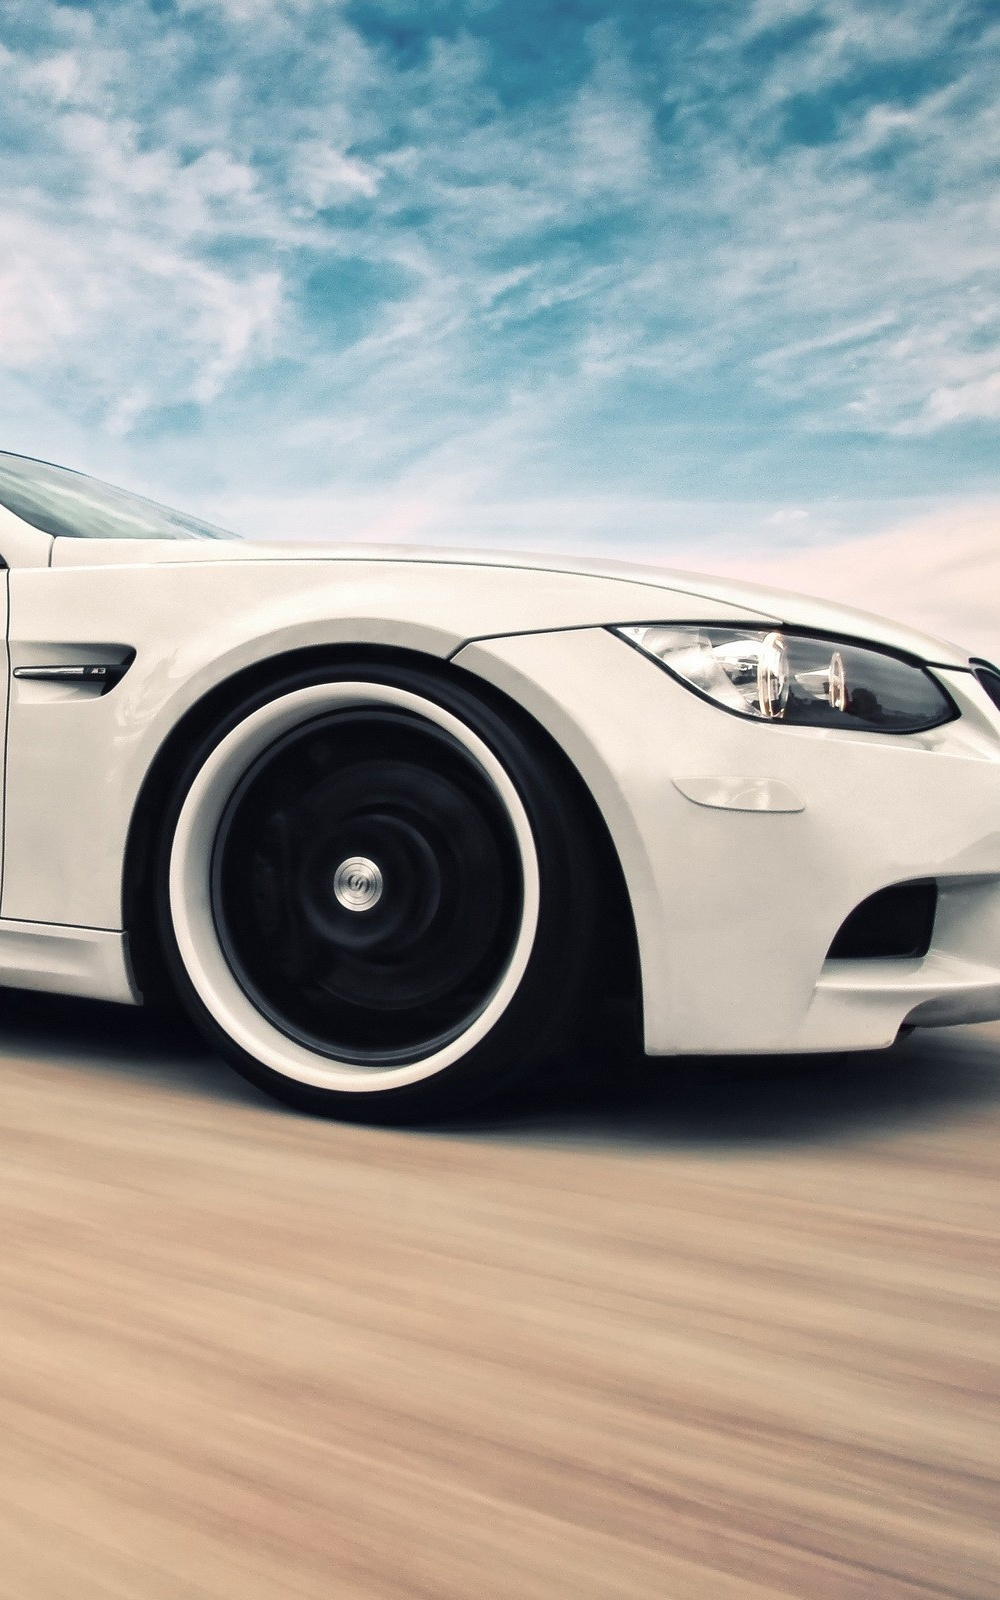 Bmw M3 White Super Car Wallpaper Ios Wallpapers And